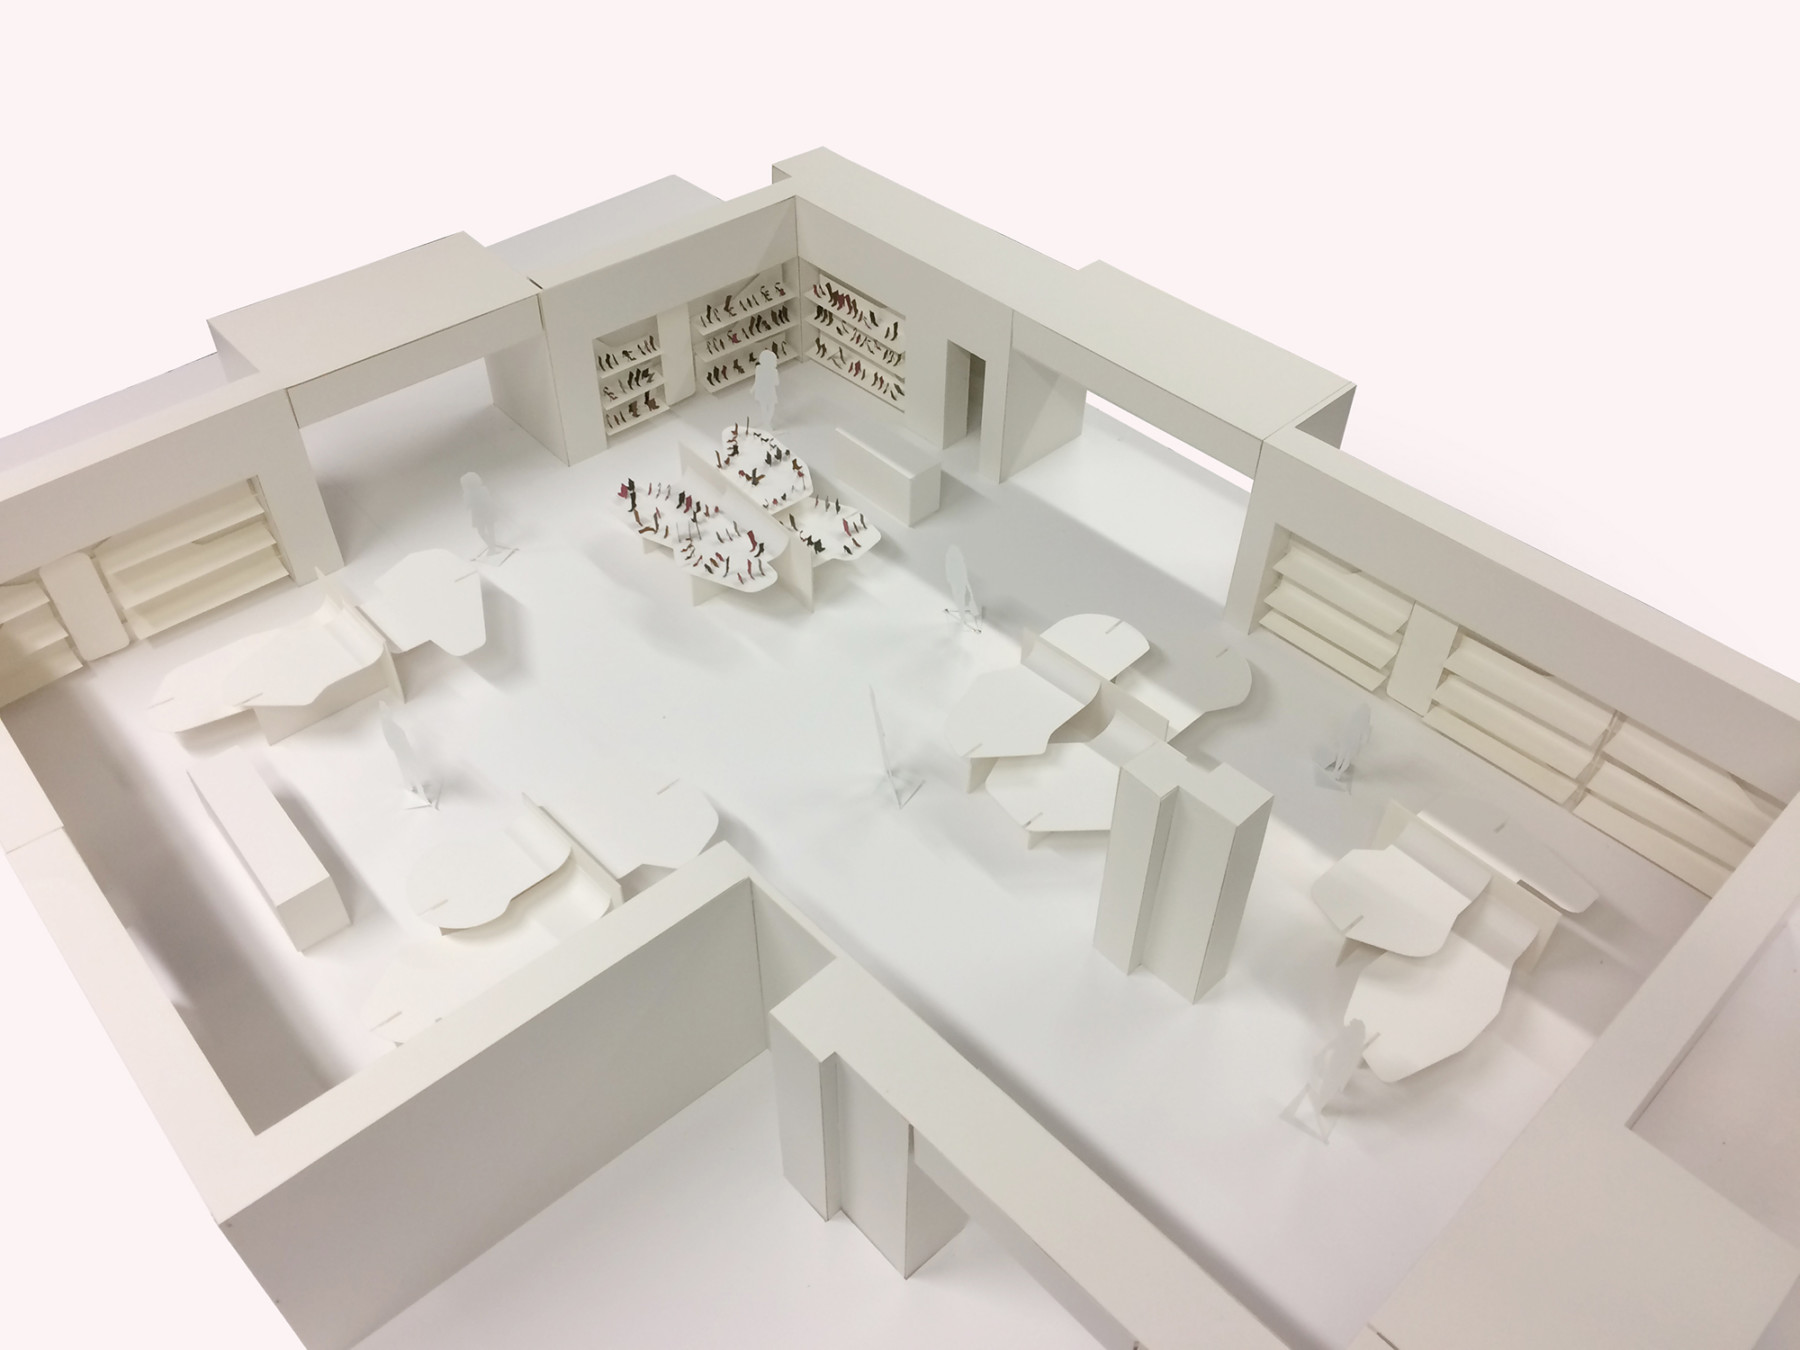 jamie-fobert-architects-selfridges-shoe-galleries-luxury-retail-concept-gallery-2-model1